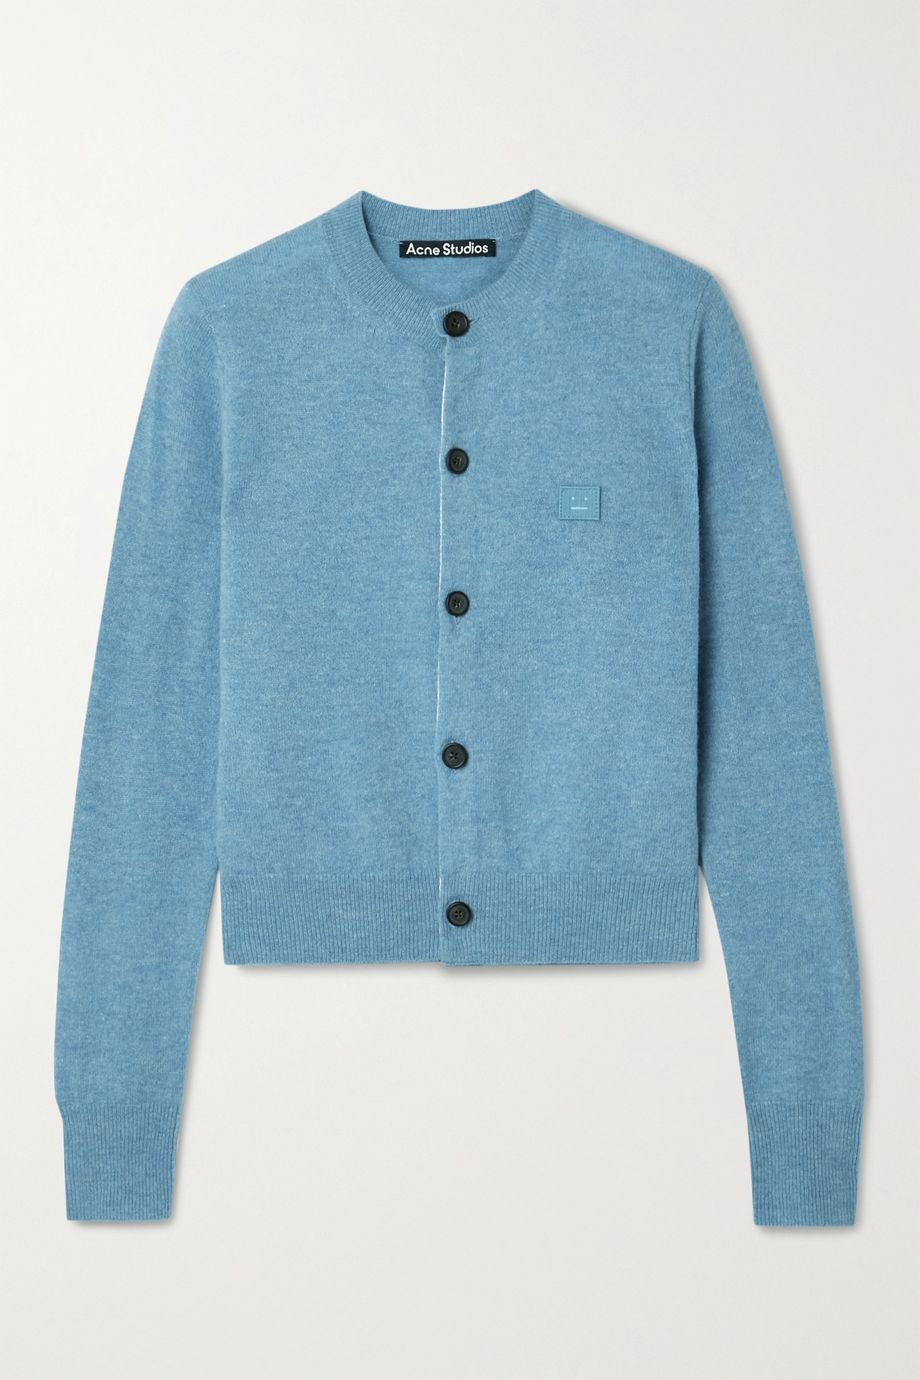 Acne Studios Cardigan aus Wolle mit Applikation